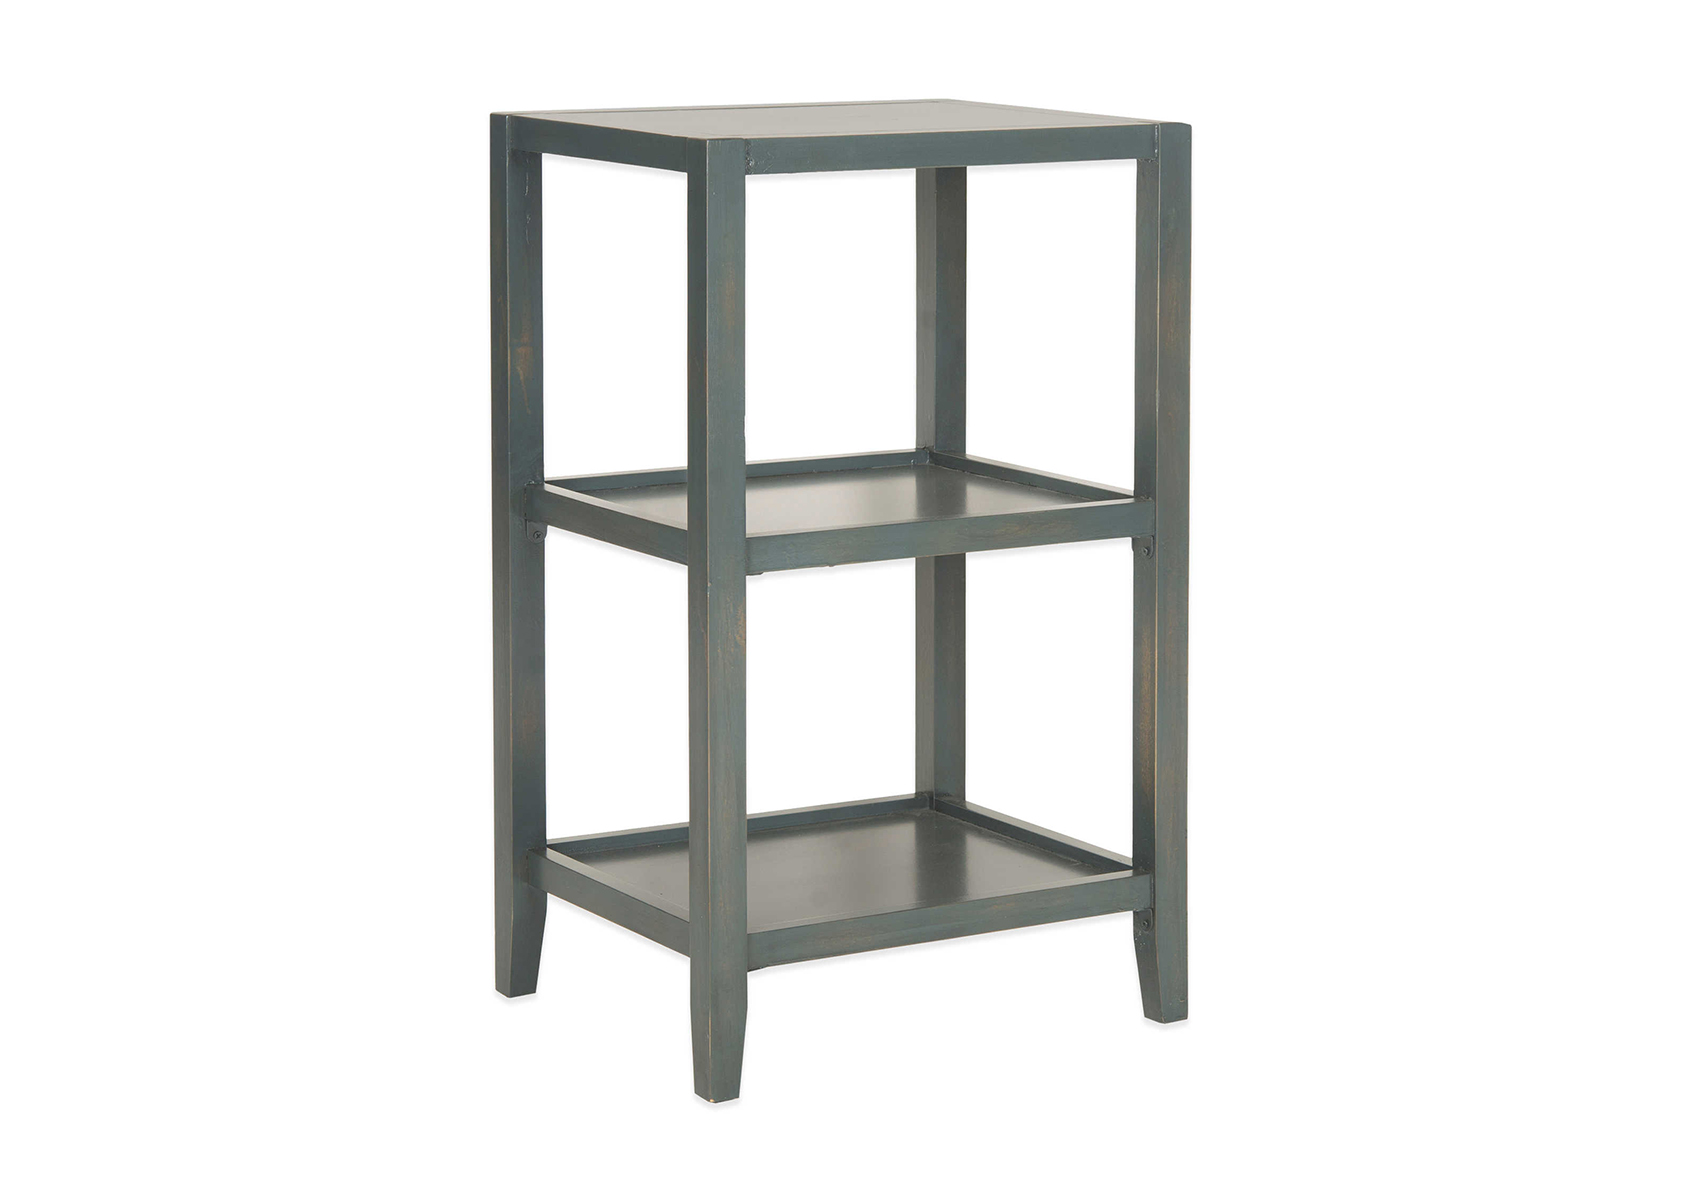 Bed Bath & Beyond Safavieh Andy Bookcase